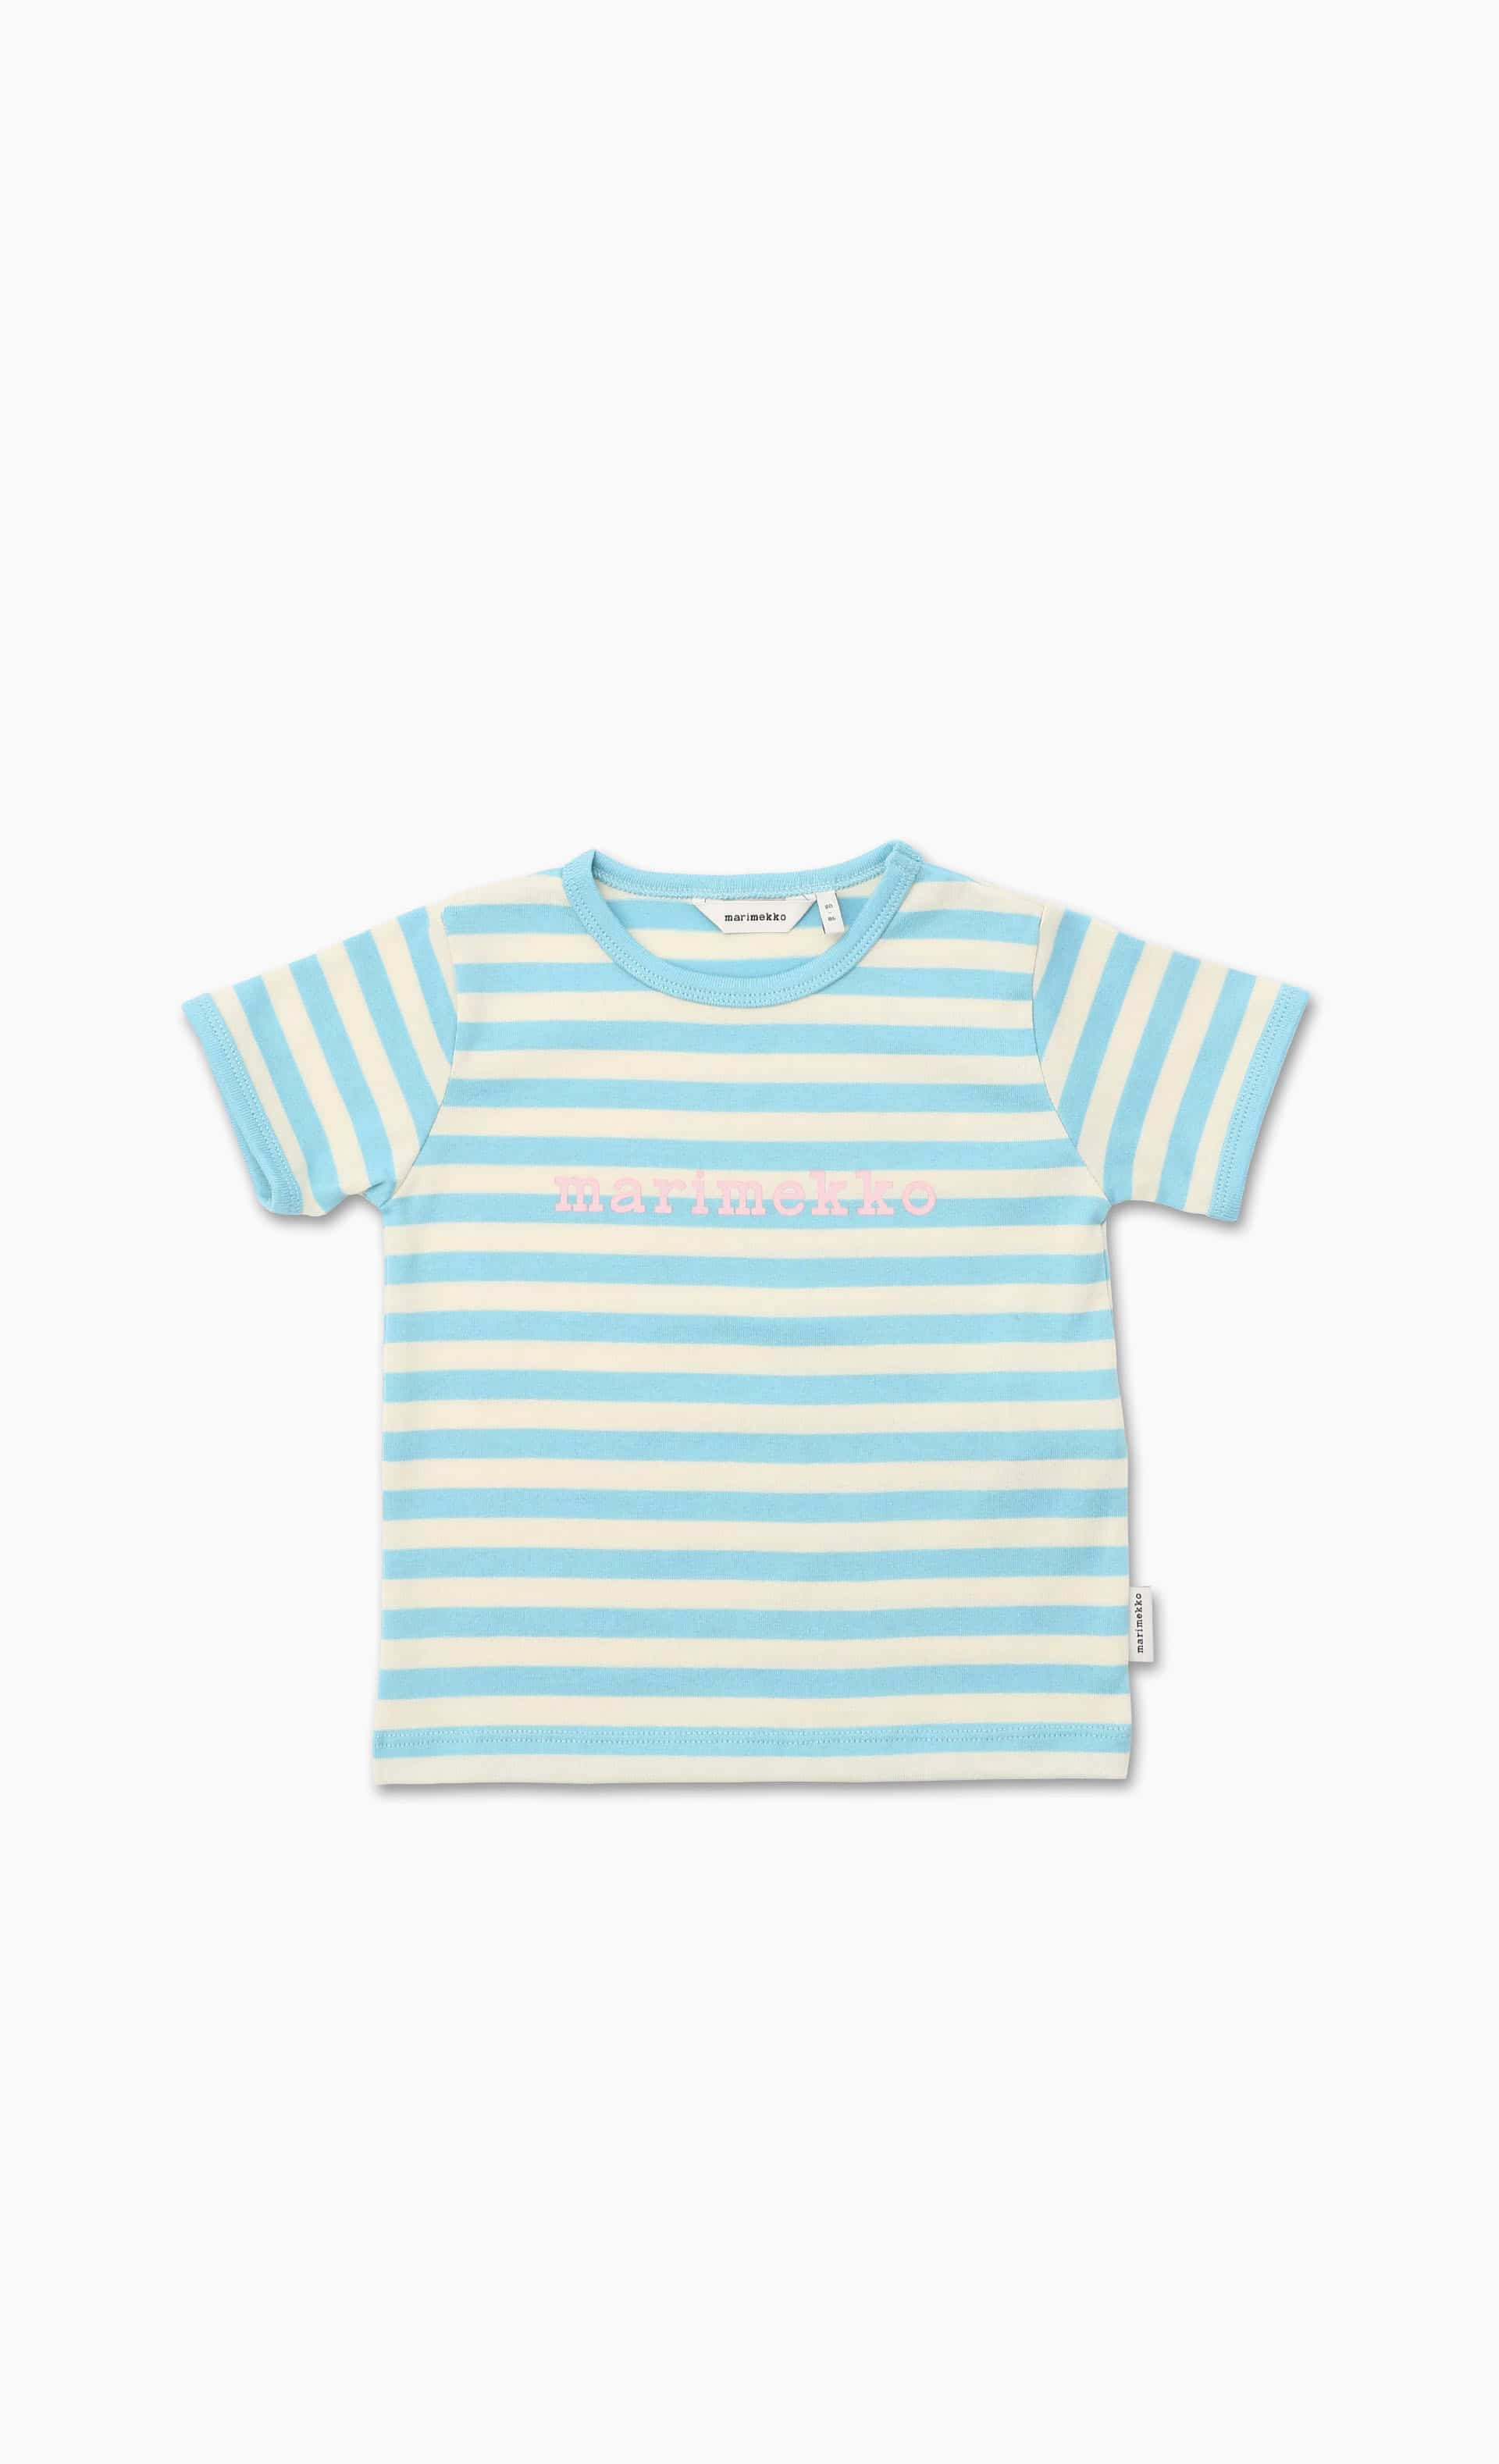 【10% off selected items】[Kids]Leuto Tasaraita 1 カットソー